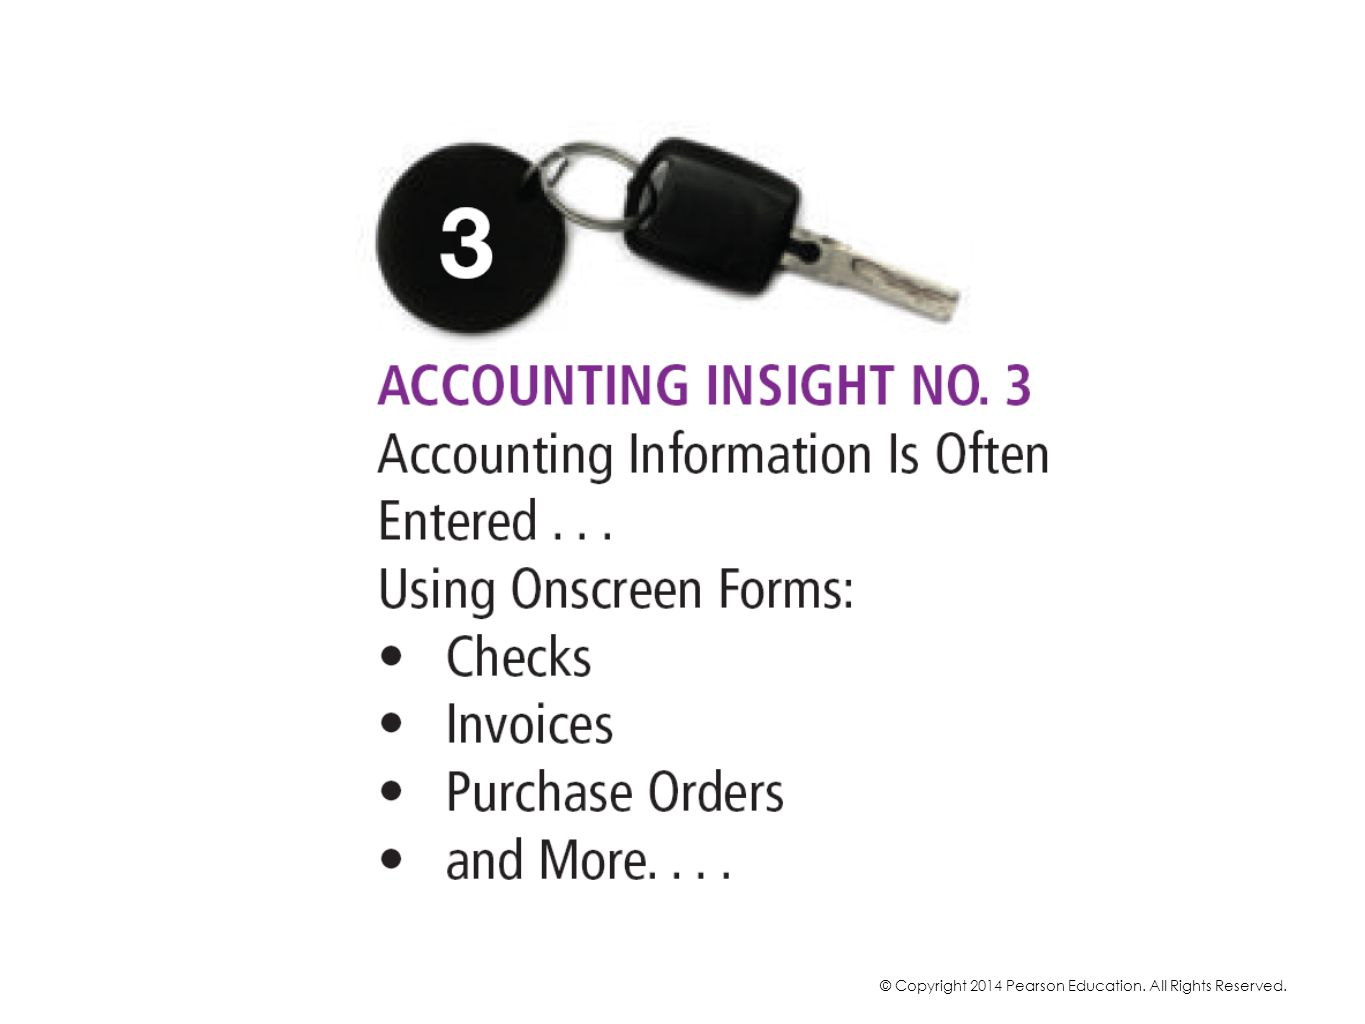 Instead, accounting information is typically entered using onscreen forms, such as onscreen checks, onscreen invoices, purchase orders, etc.